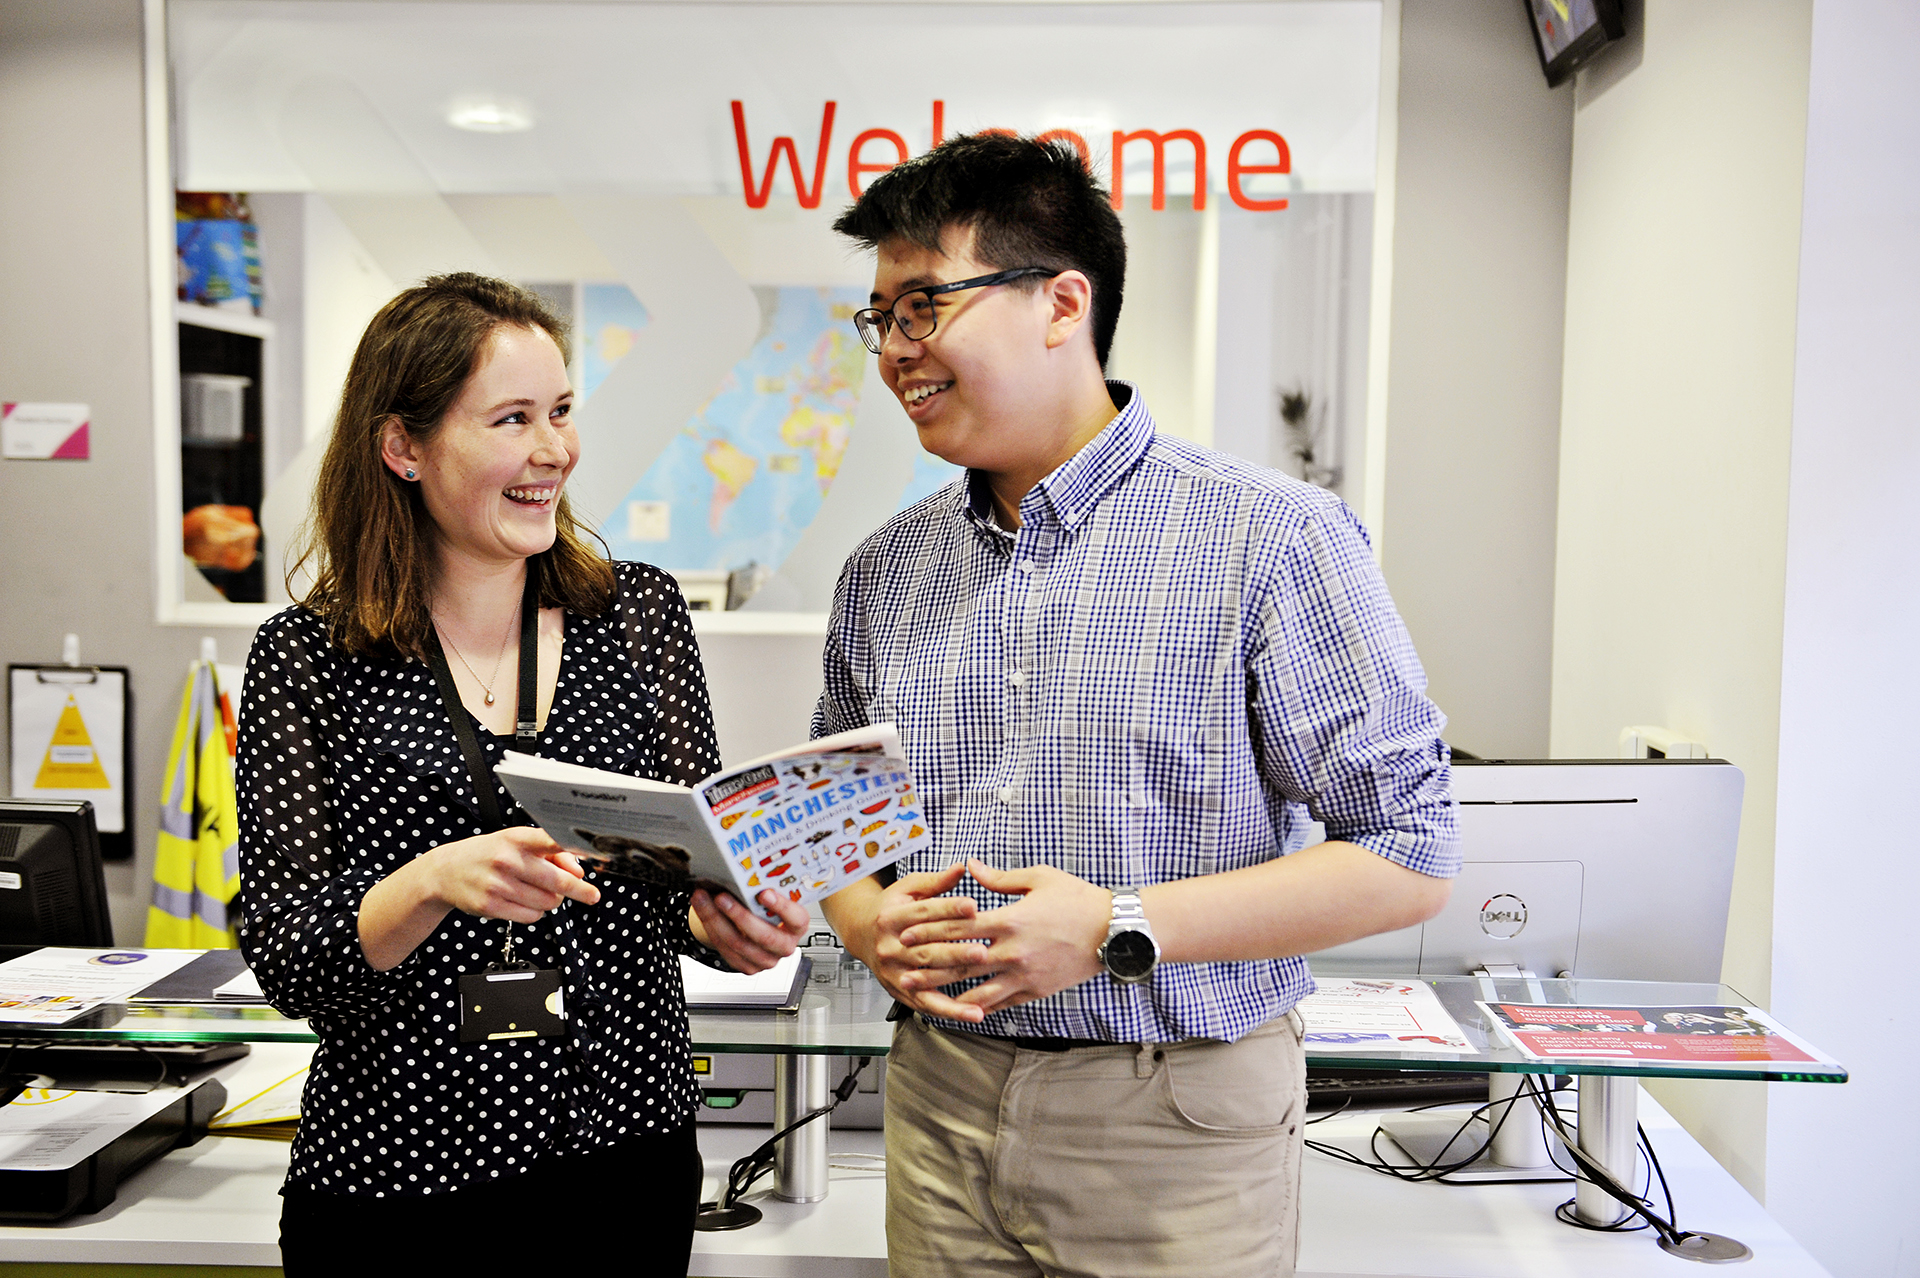 The INTO Manchester welcome desk provides support to students